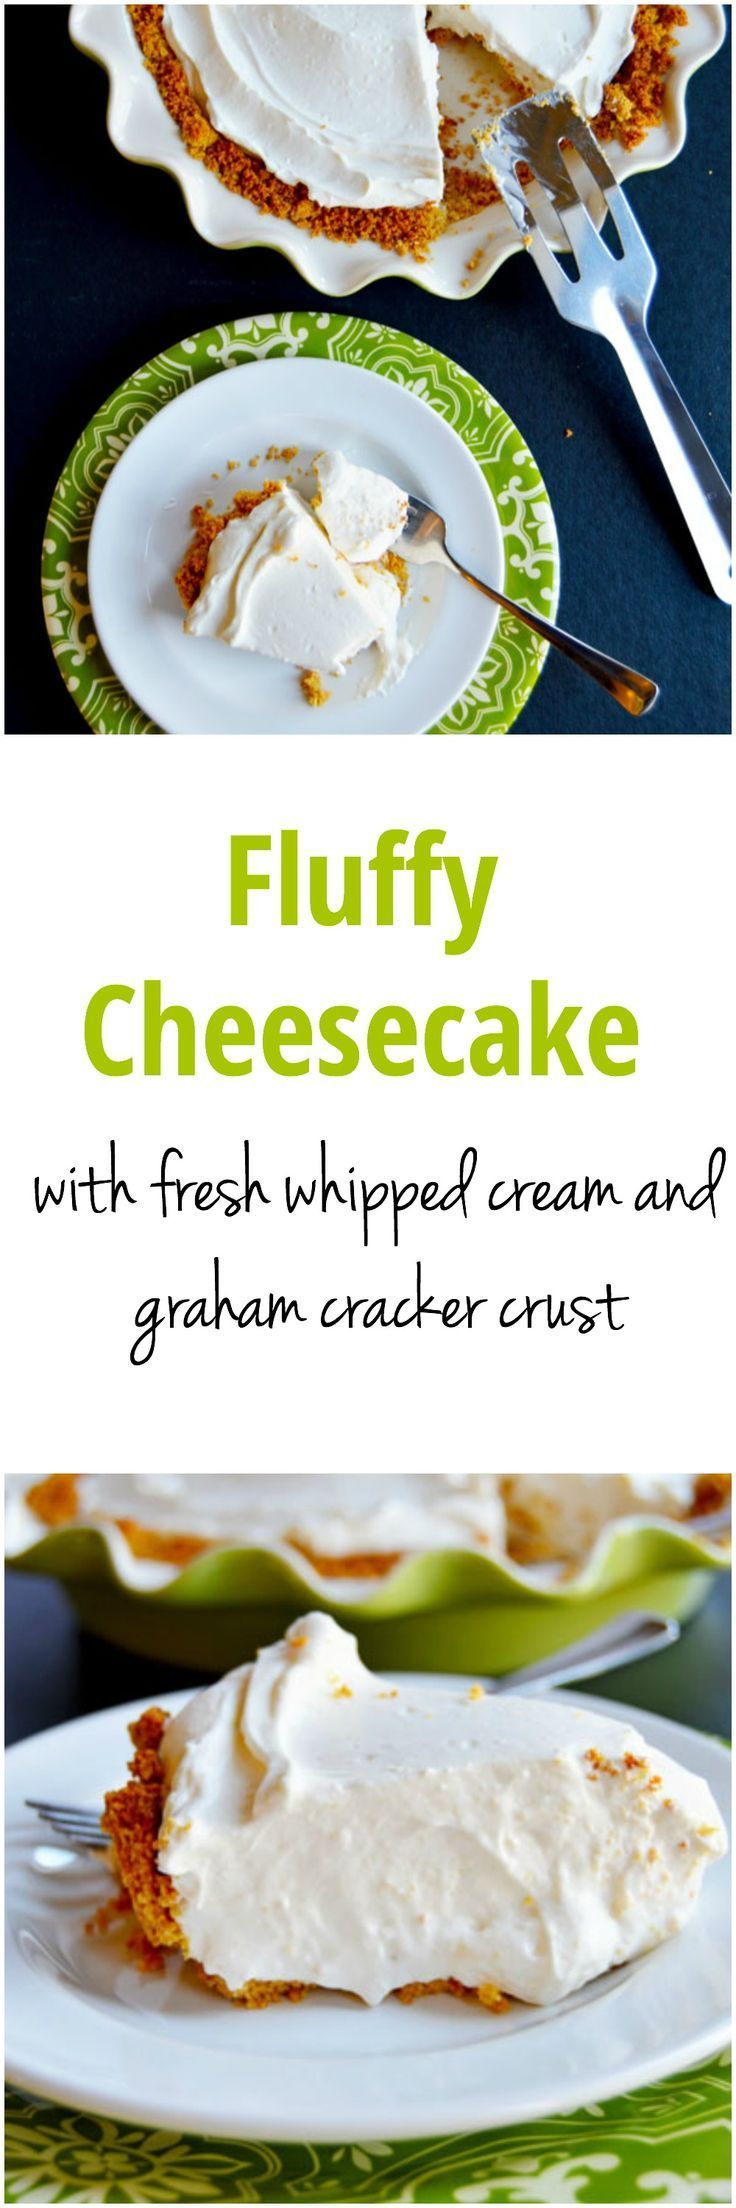 Fluffy Cheesecake: the QUICKEST and MOST DELICIOUS dessert!  With 2 bowls, 7 ingredients, and less than 20 minutes you can have dessert ready to go.  Perfect for parties and events. This is definitely a recipe to have in your repertoire | thehungrytravelerblog.com